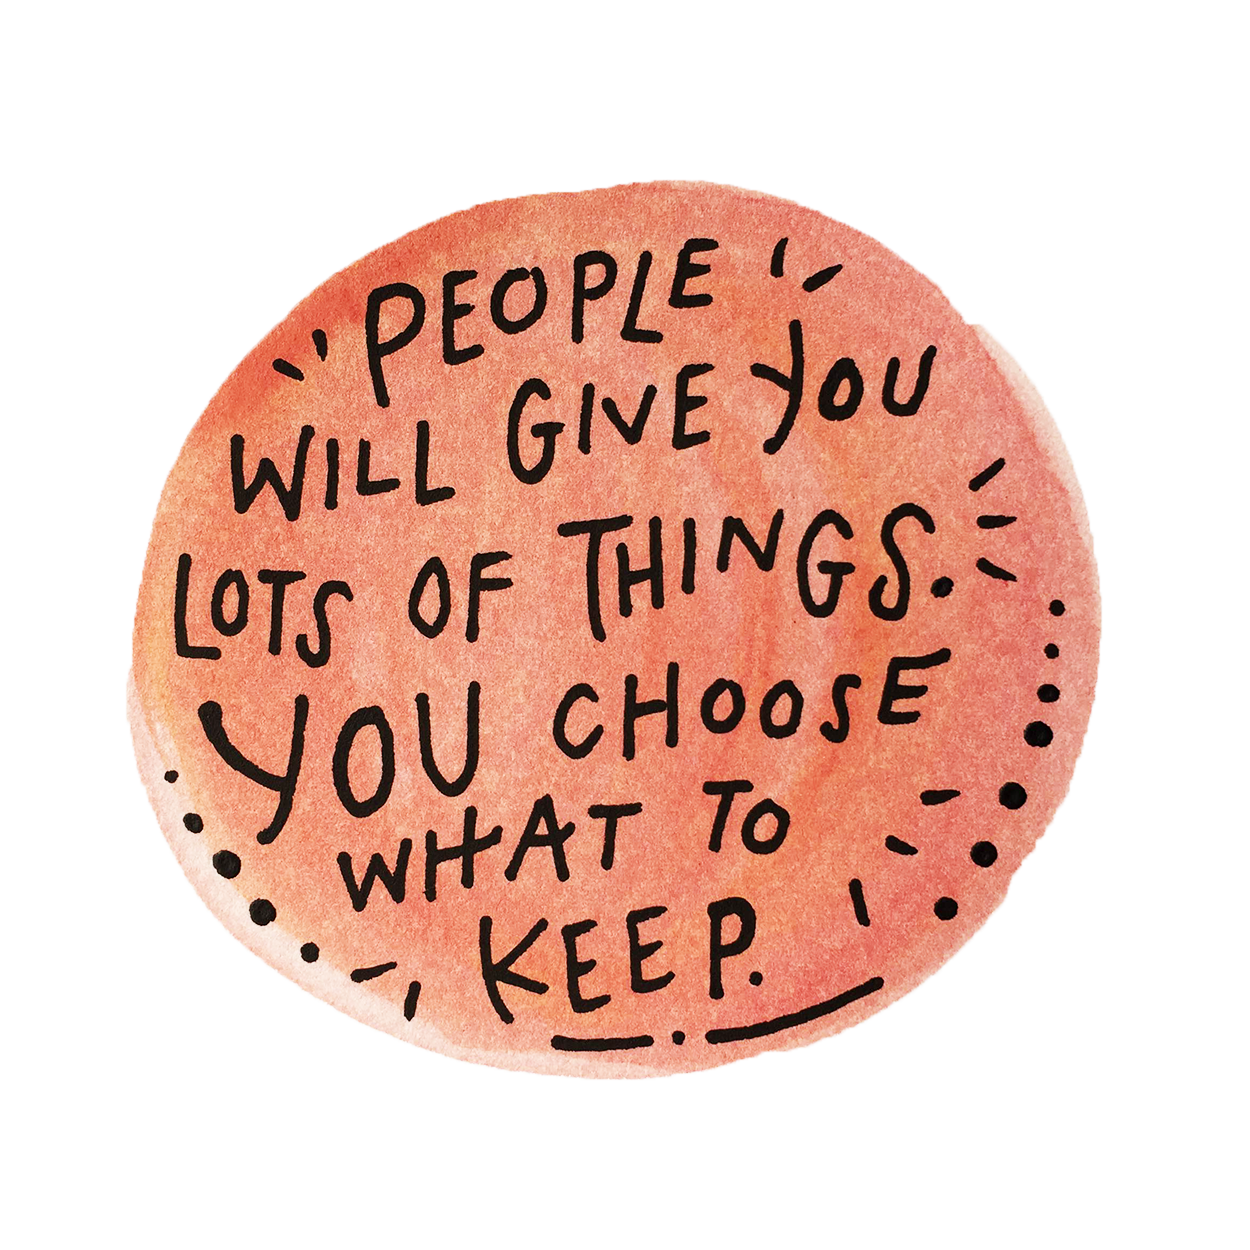 People will give you lots of things. You choose what to keep.